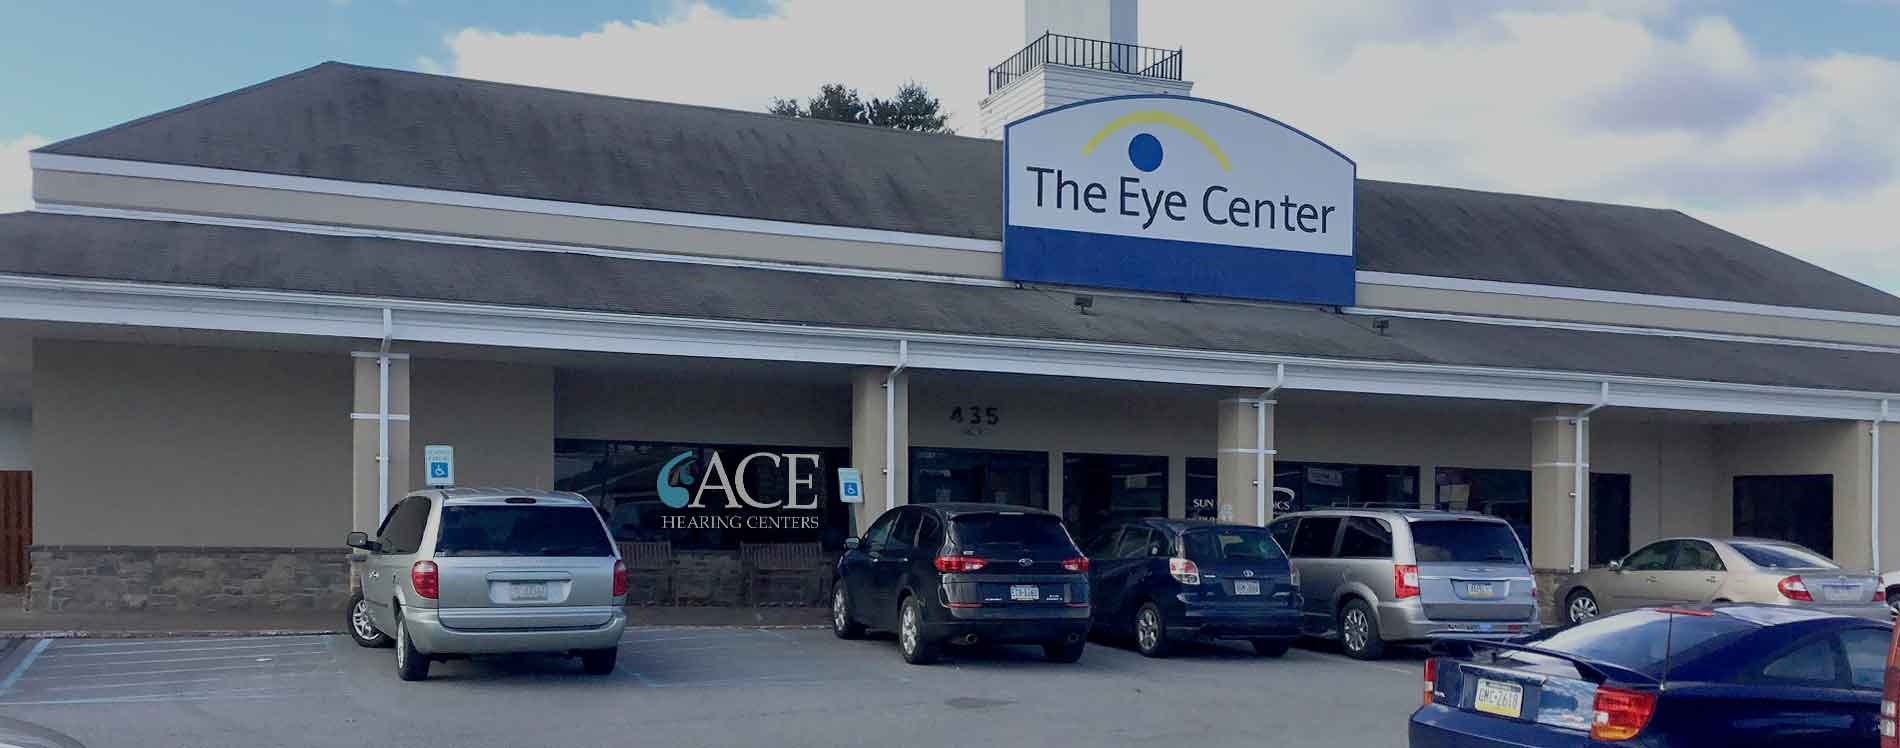 Ace Hearing Centers, Williamsport, PA